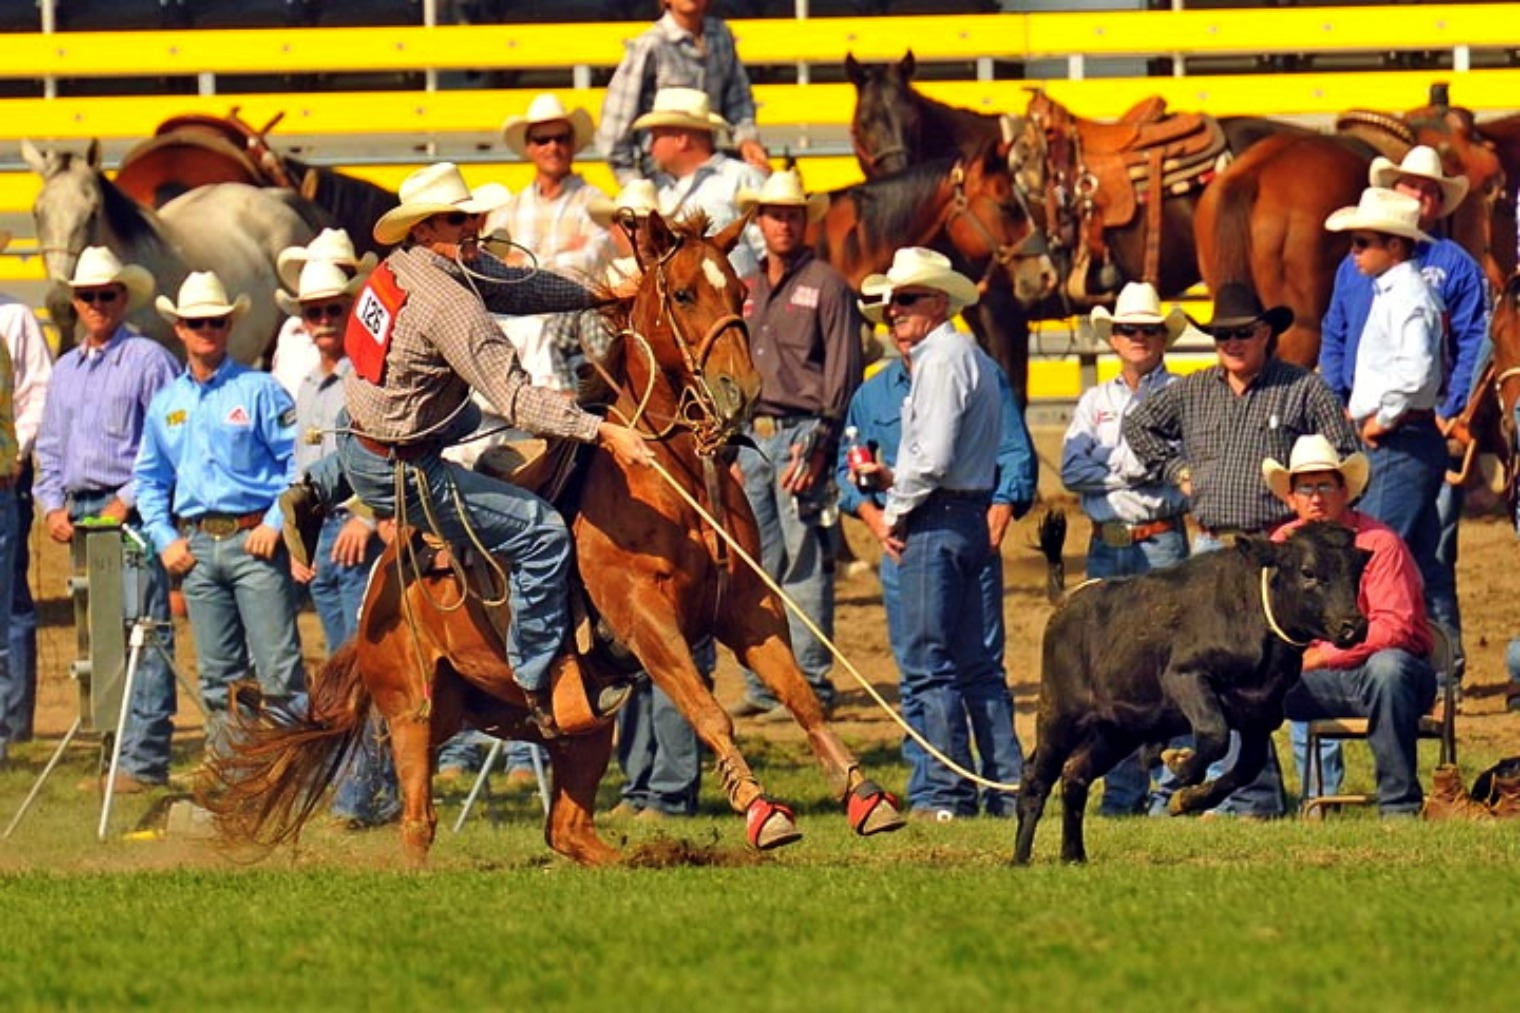 Calf Roping Wallpaper And Calf Roping For The 2011